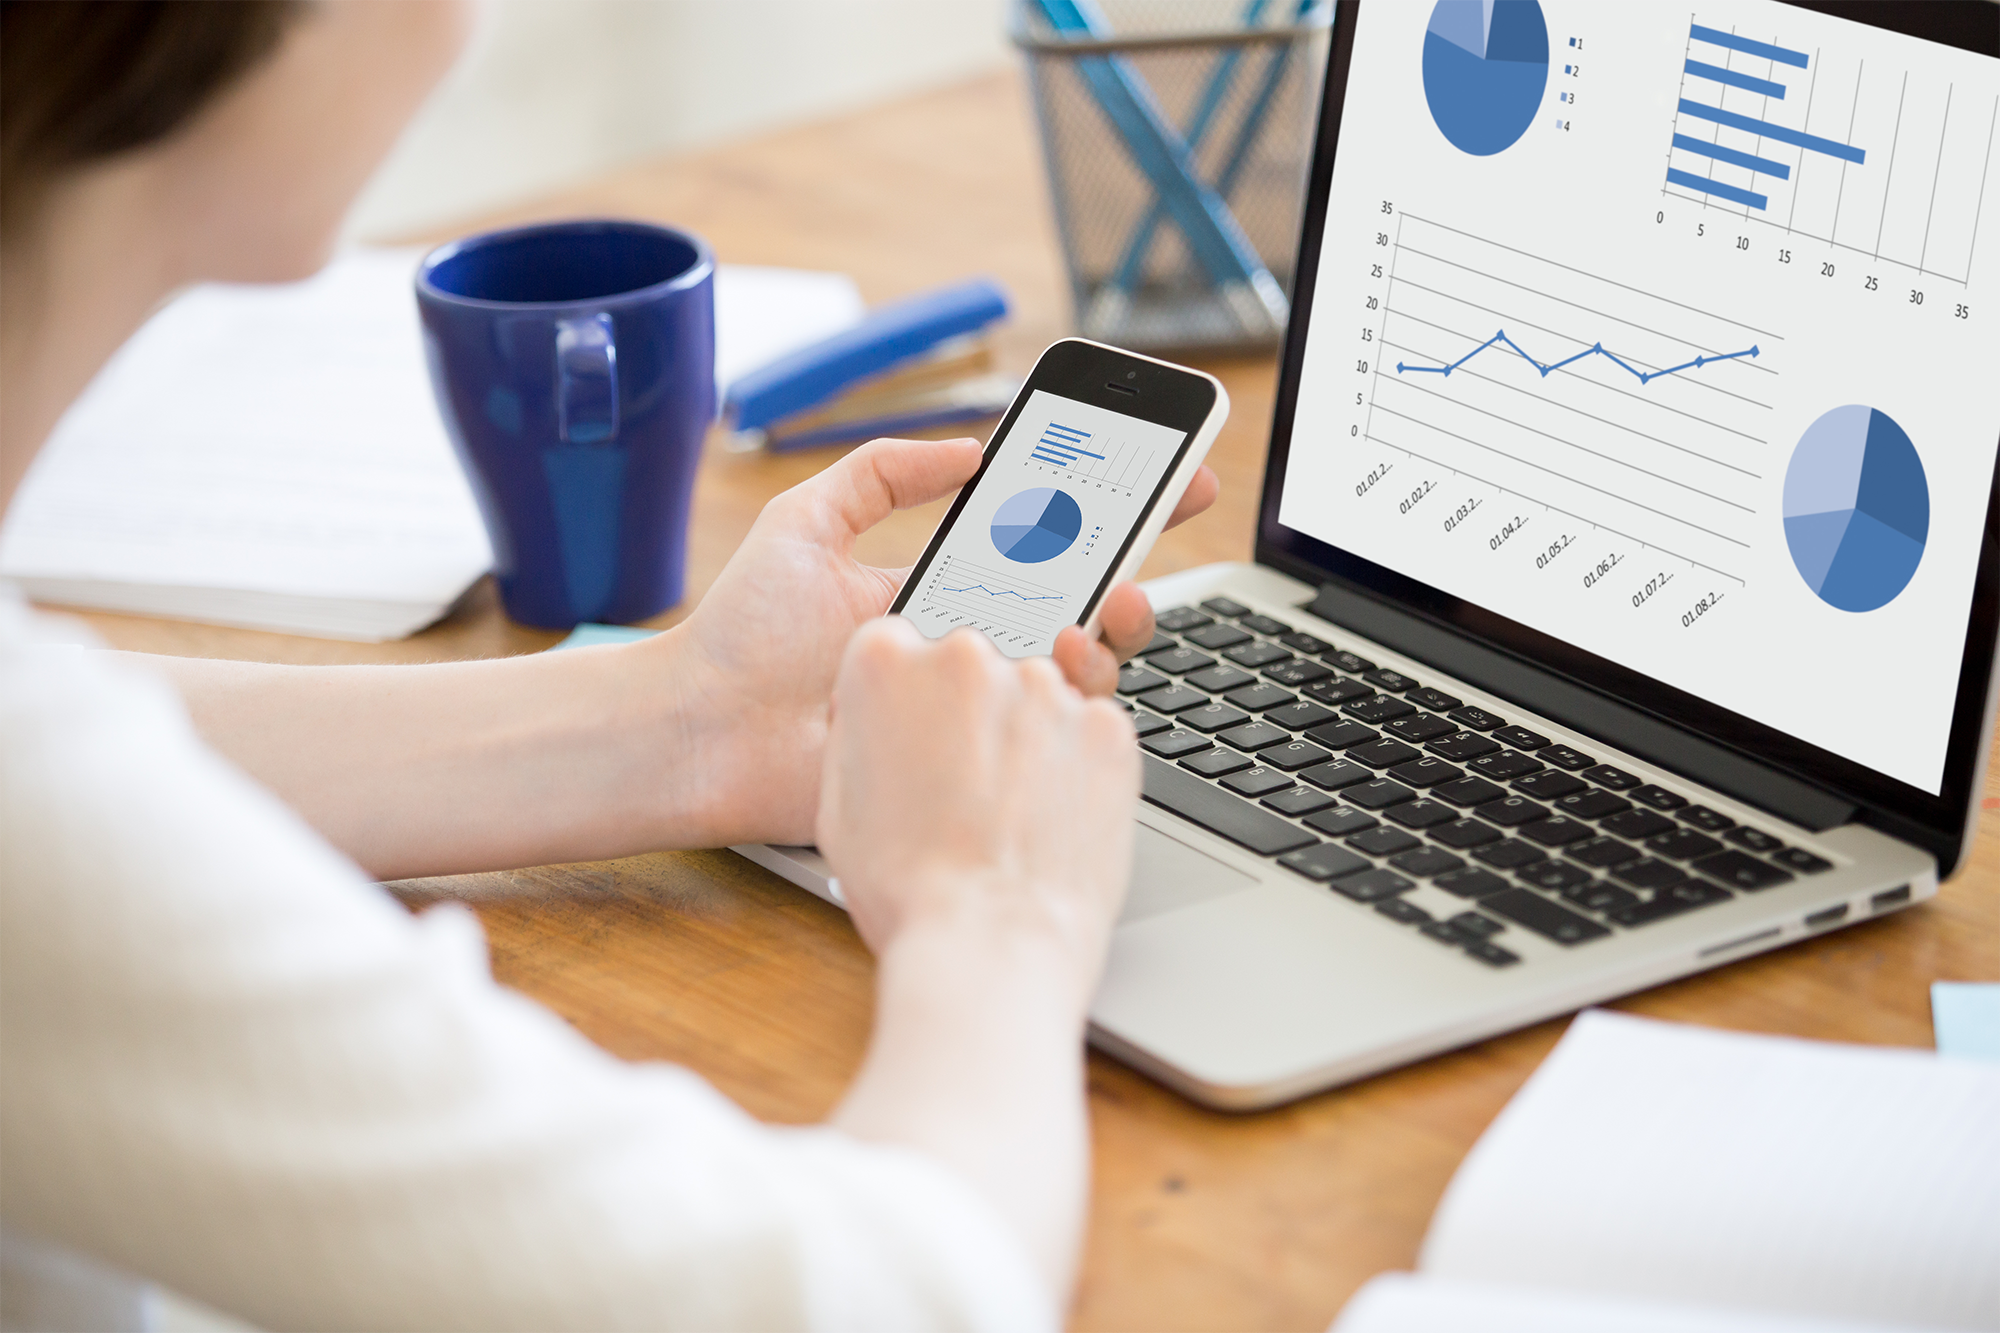 Use Tracking Numbers to Maximize Marketing Efficiency